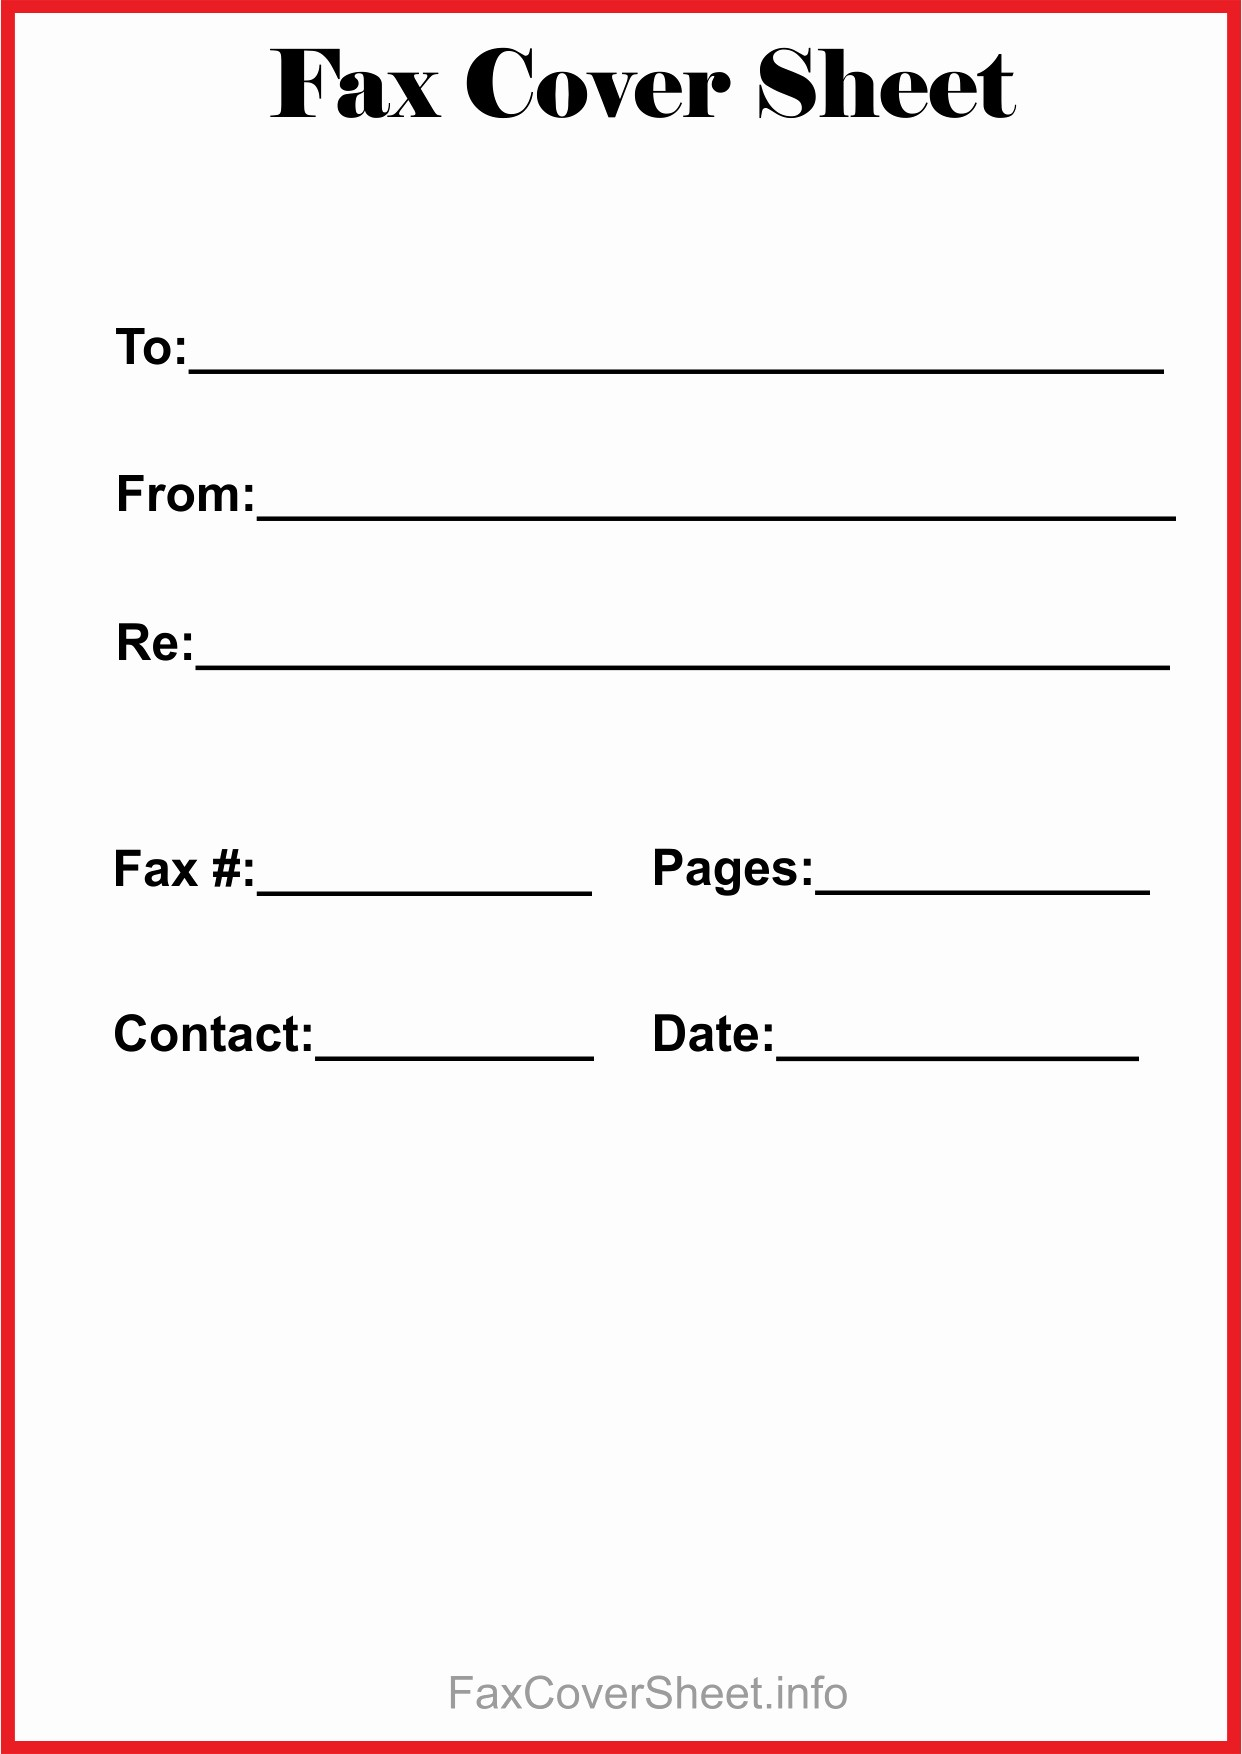 Cover Sheet for A Fax Unique Free Fax Cover Sheet Template Download